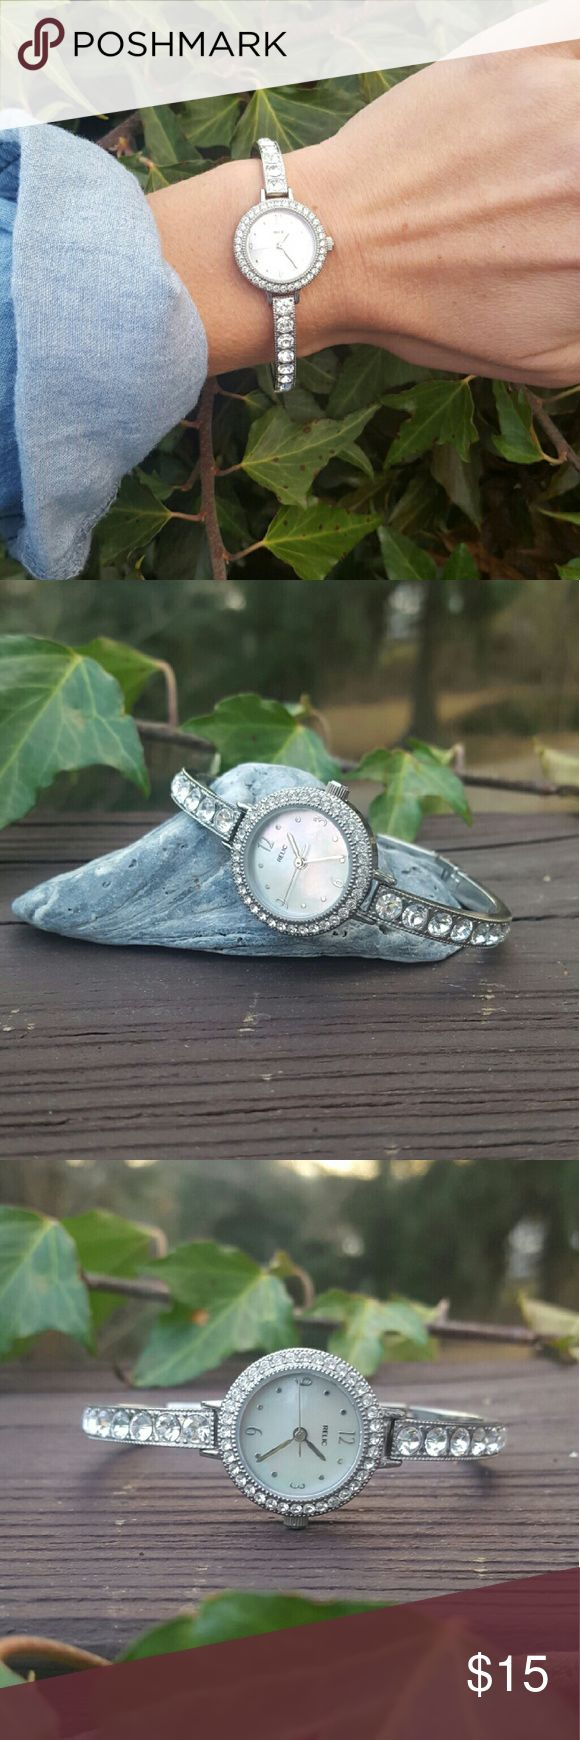 Relic watch never been worn Super cute Relic watch I got a few years ago and literally never wore but the battery did die, so it does need a new one. Stainless steel back (with protective sticker still on). Water resistant for up to 50 meters. Relic Accessories Watches